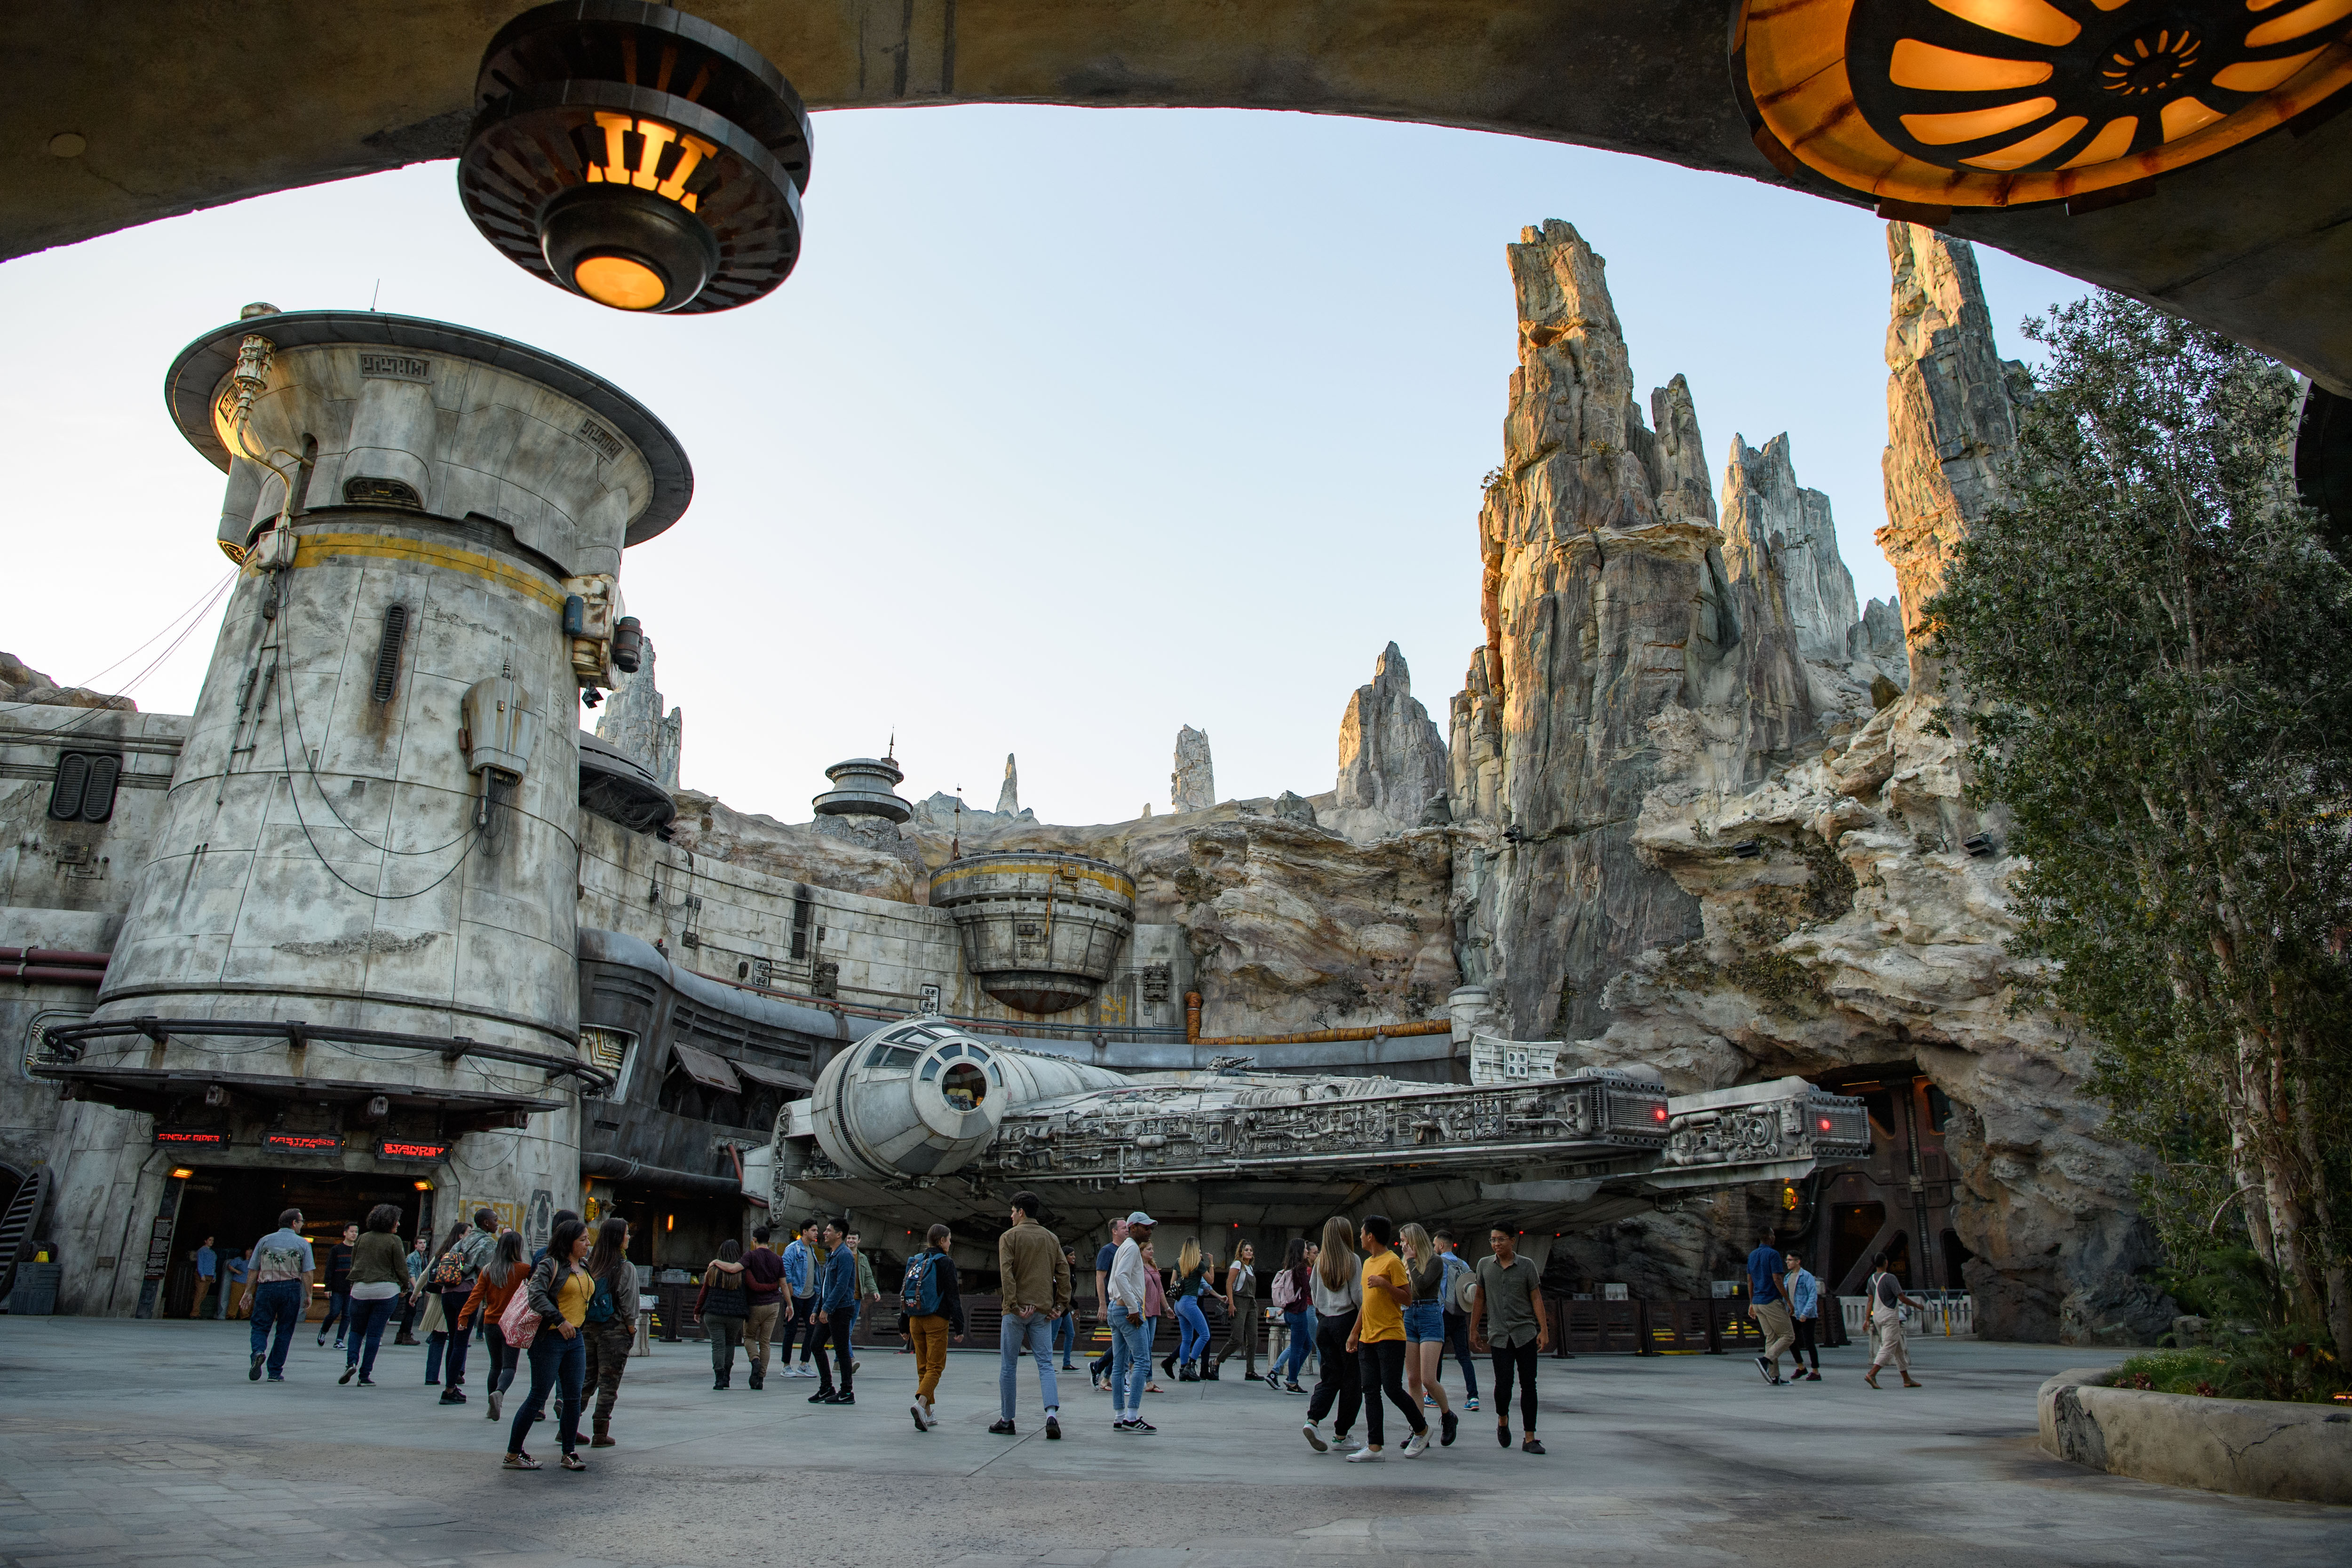 Millennium Falcon at Star wars: Galaxy's Edge